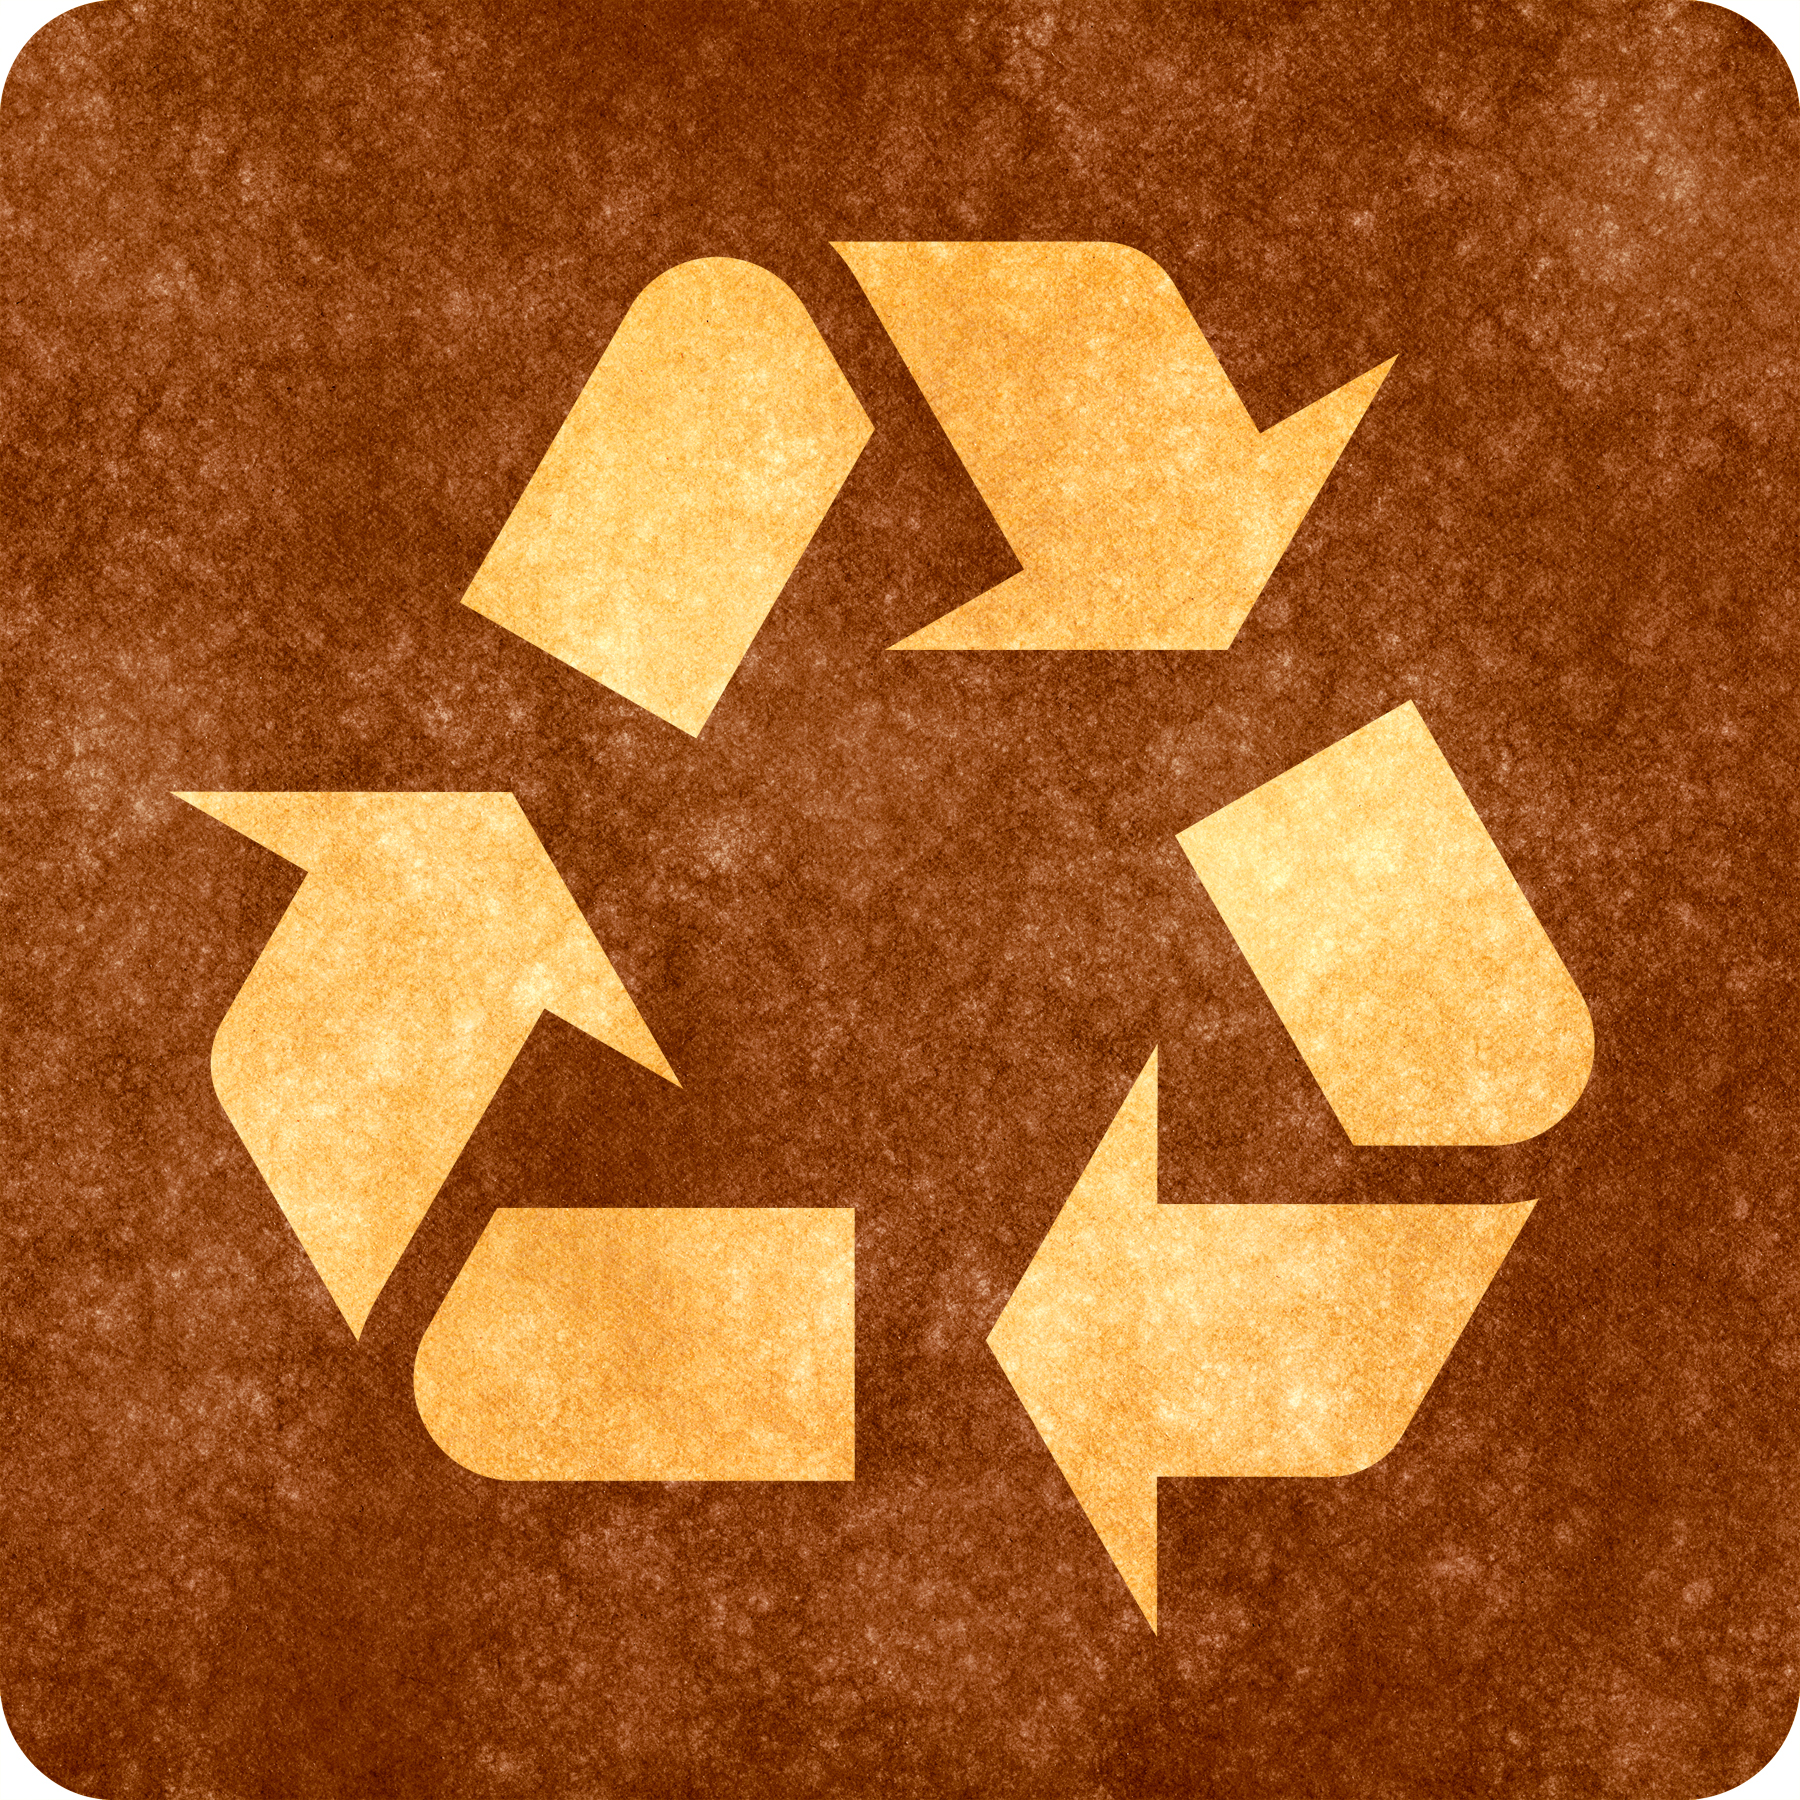 Sepia grunge sign - recycling symbol photo